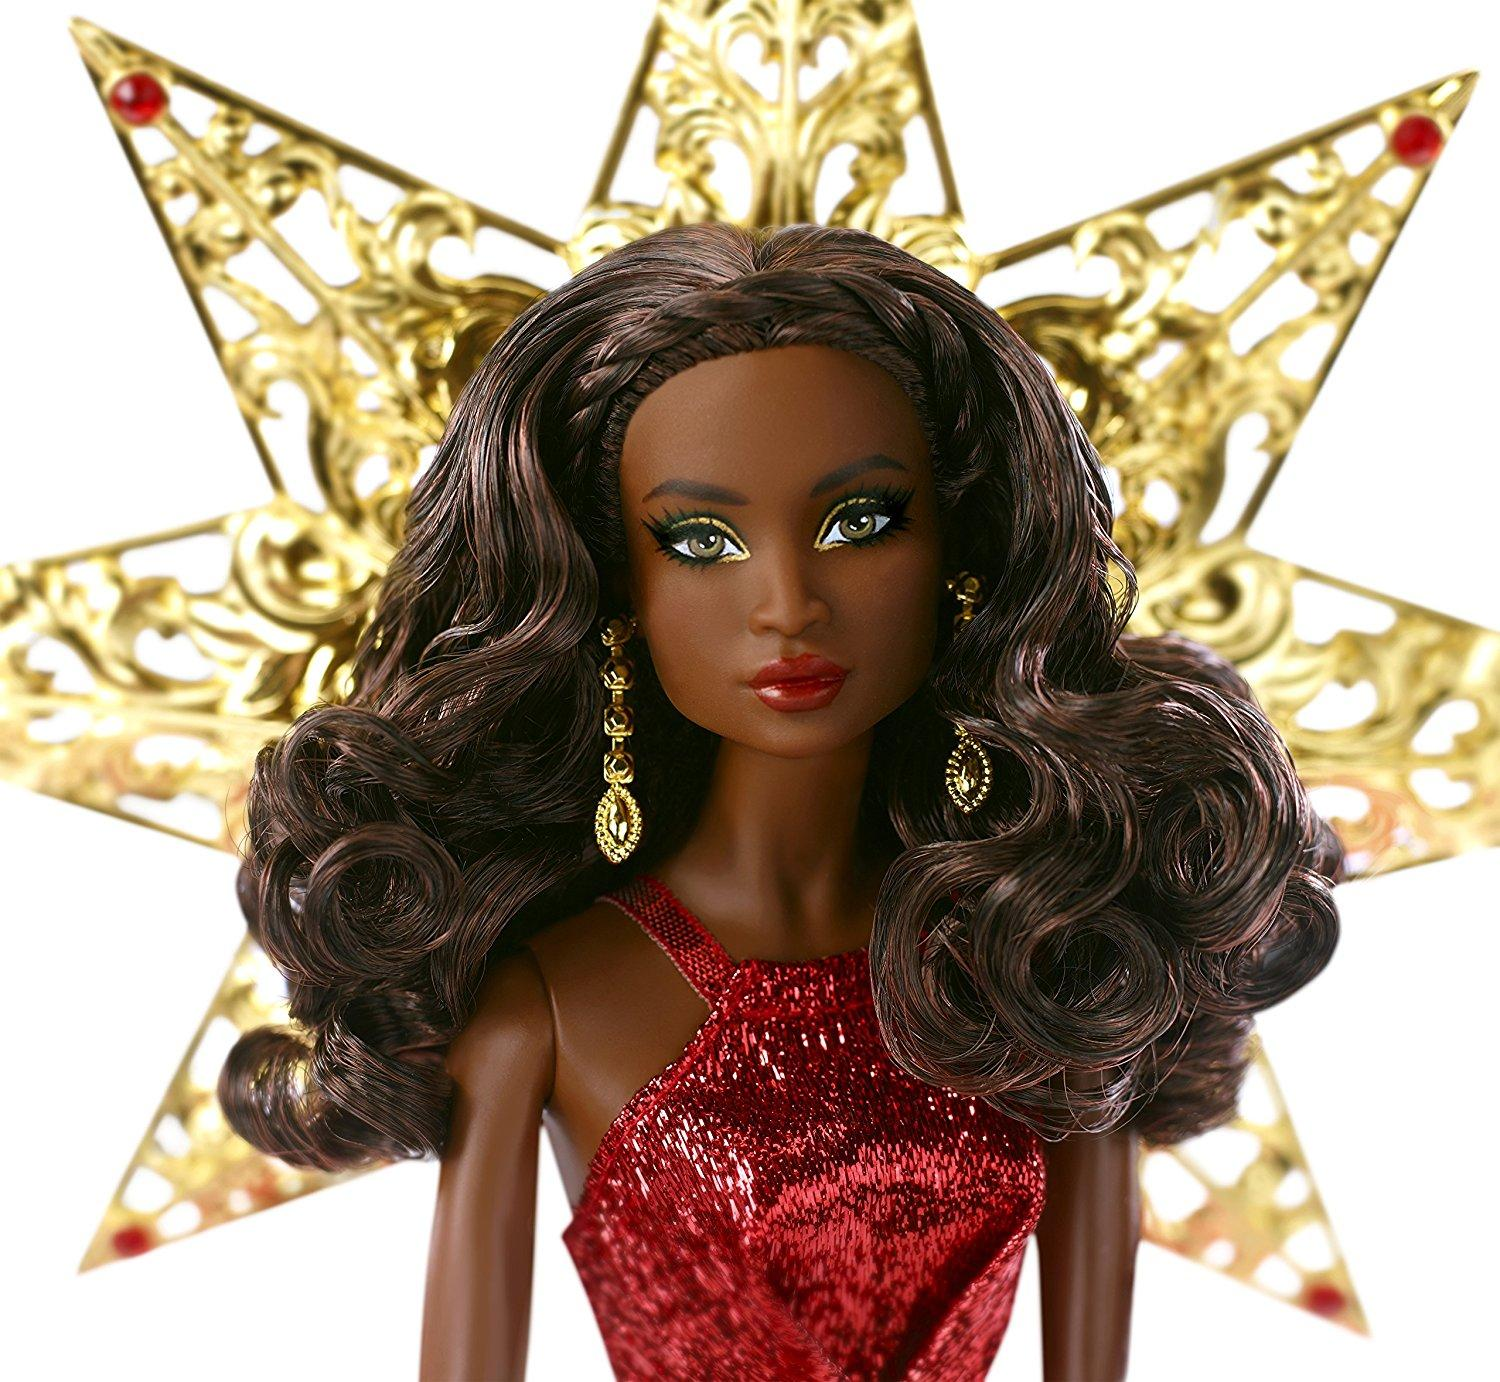 Barbie 2017 Holiday Doll Blonde Hair: Amazon.com: Barbie 2017 Holiday Nikki Black Hair With Red